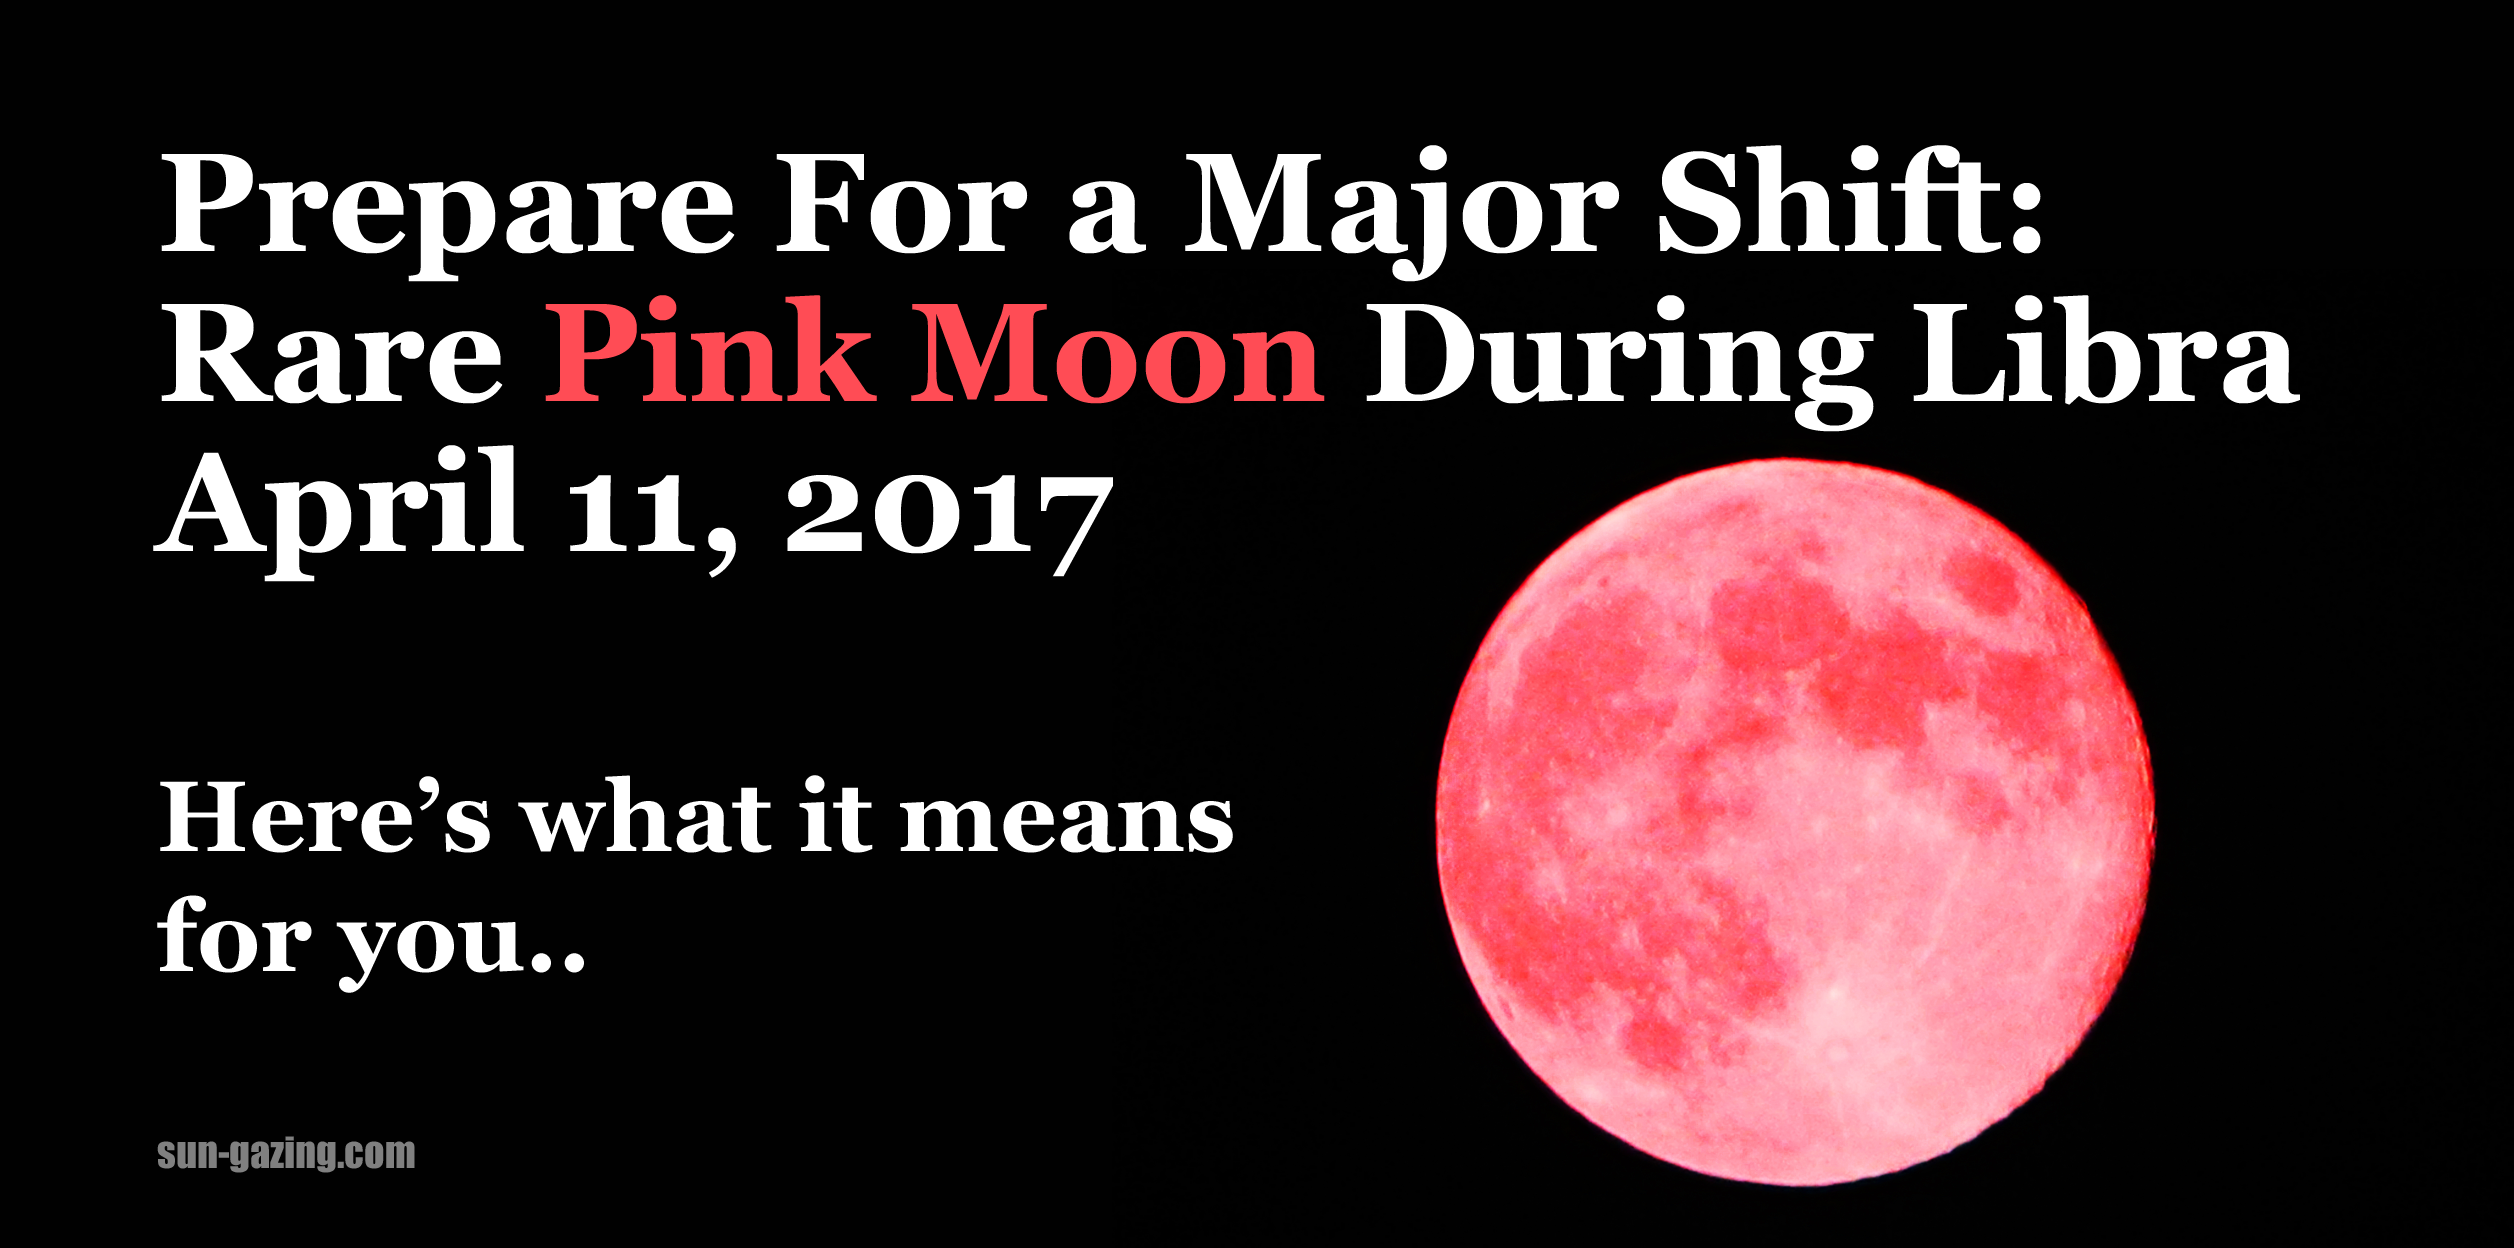 Pink Moon 2017 Rare Pink Moon During Libra Prepare For A